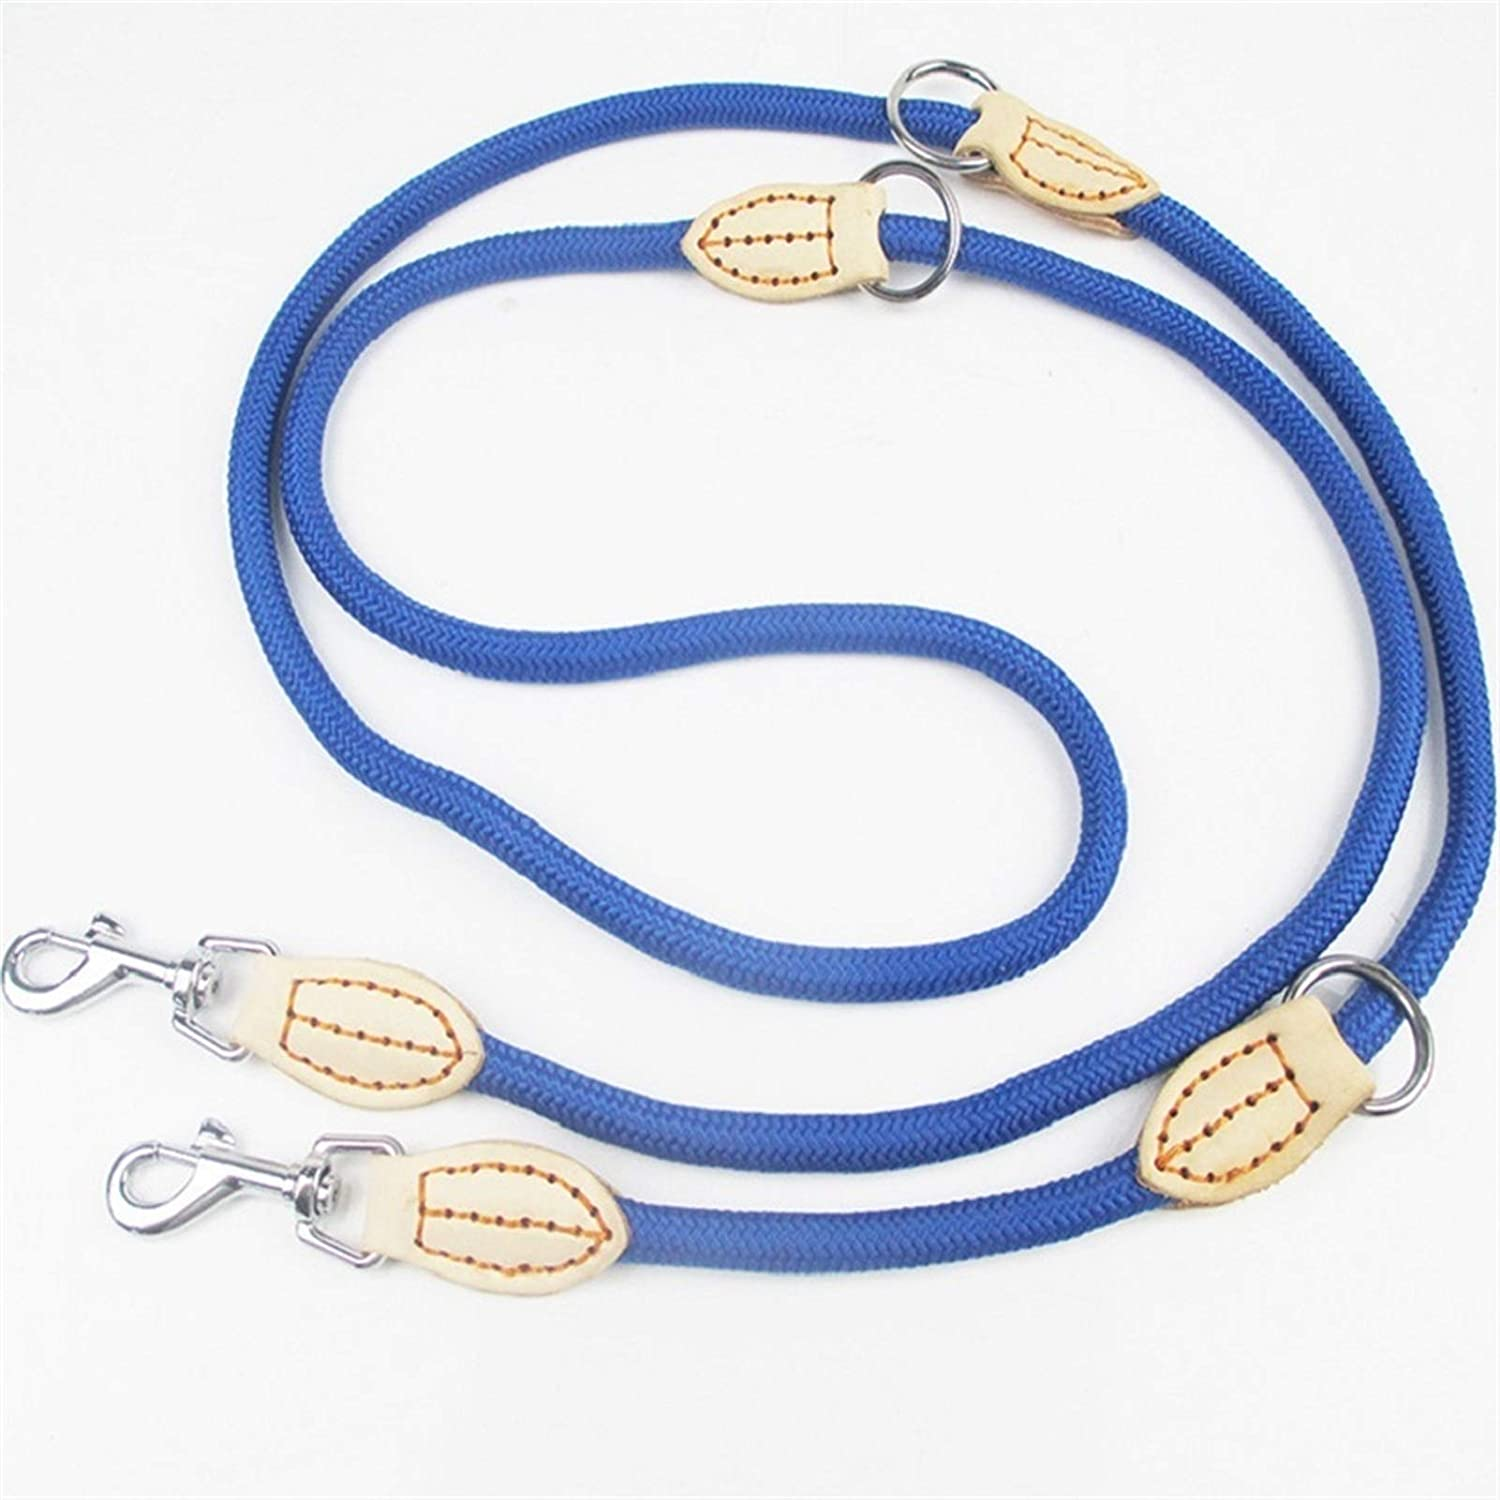 Sale price Pet Traction Rope Multifunction Two Lea Dog Nylon Outlet SALE Double Leashes